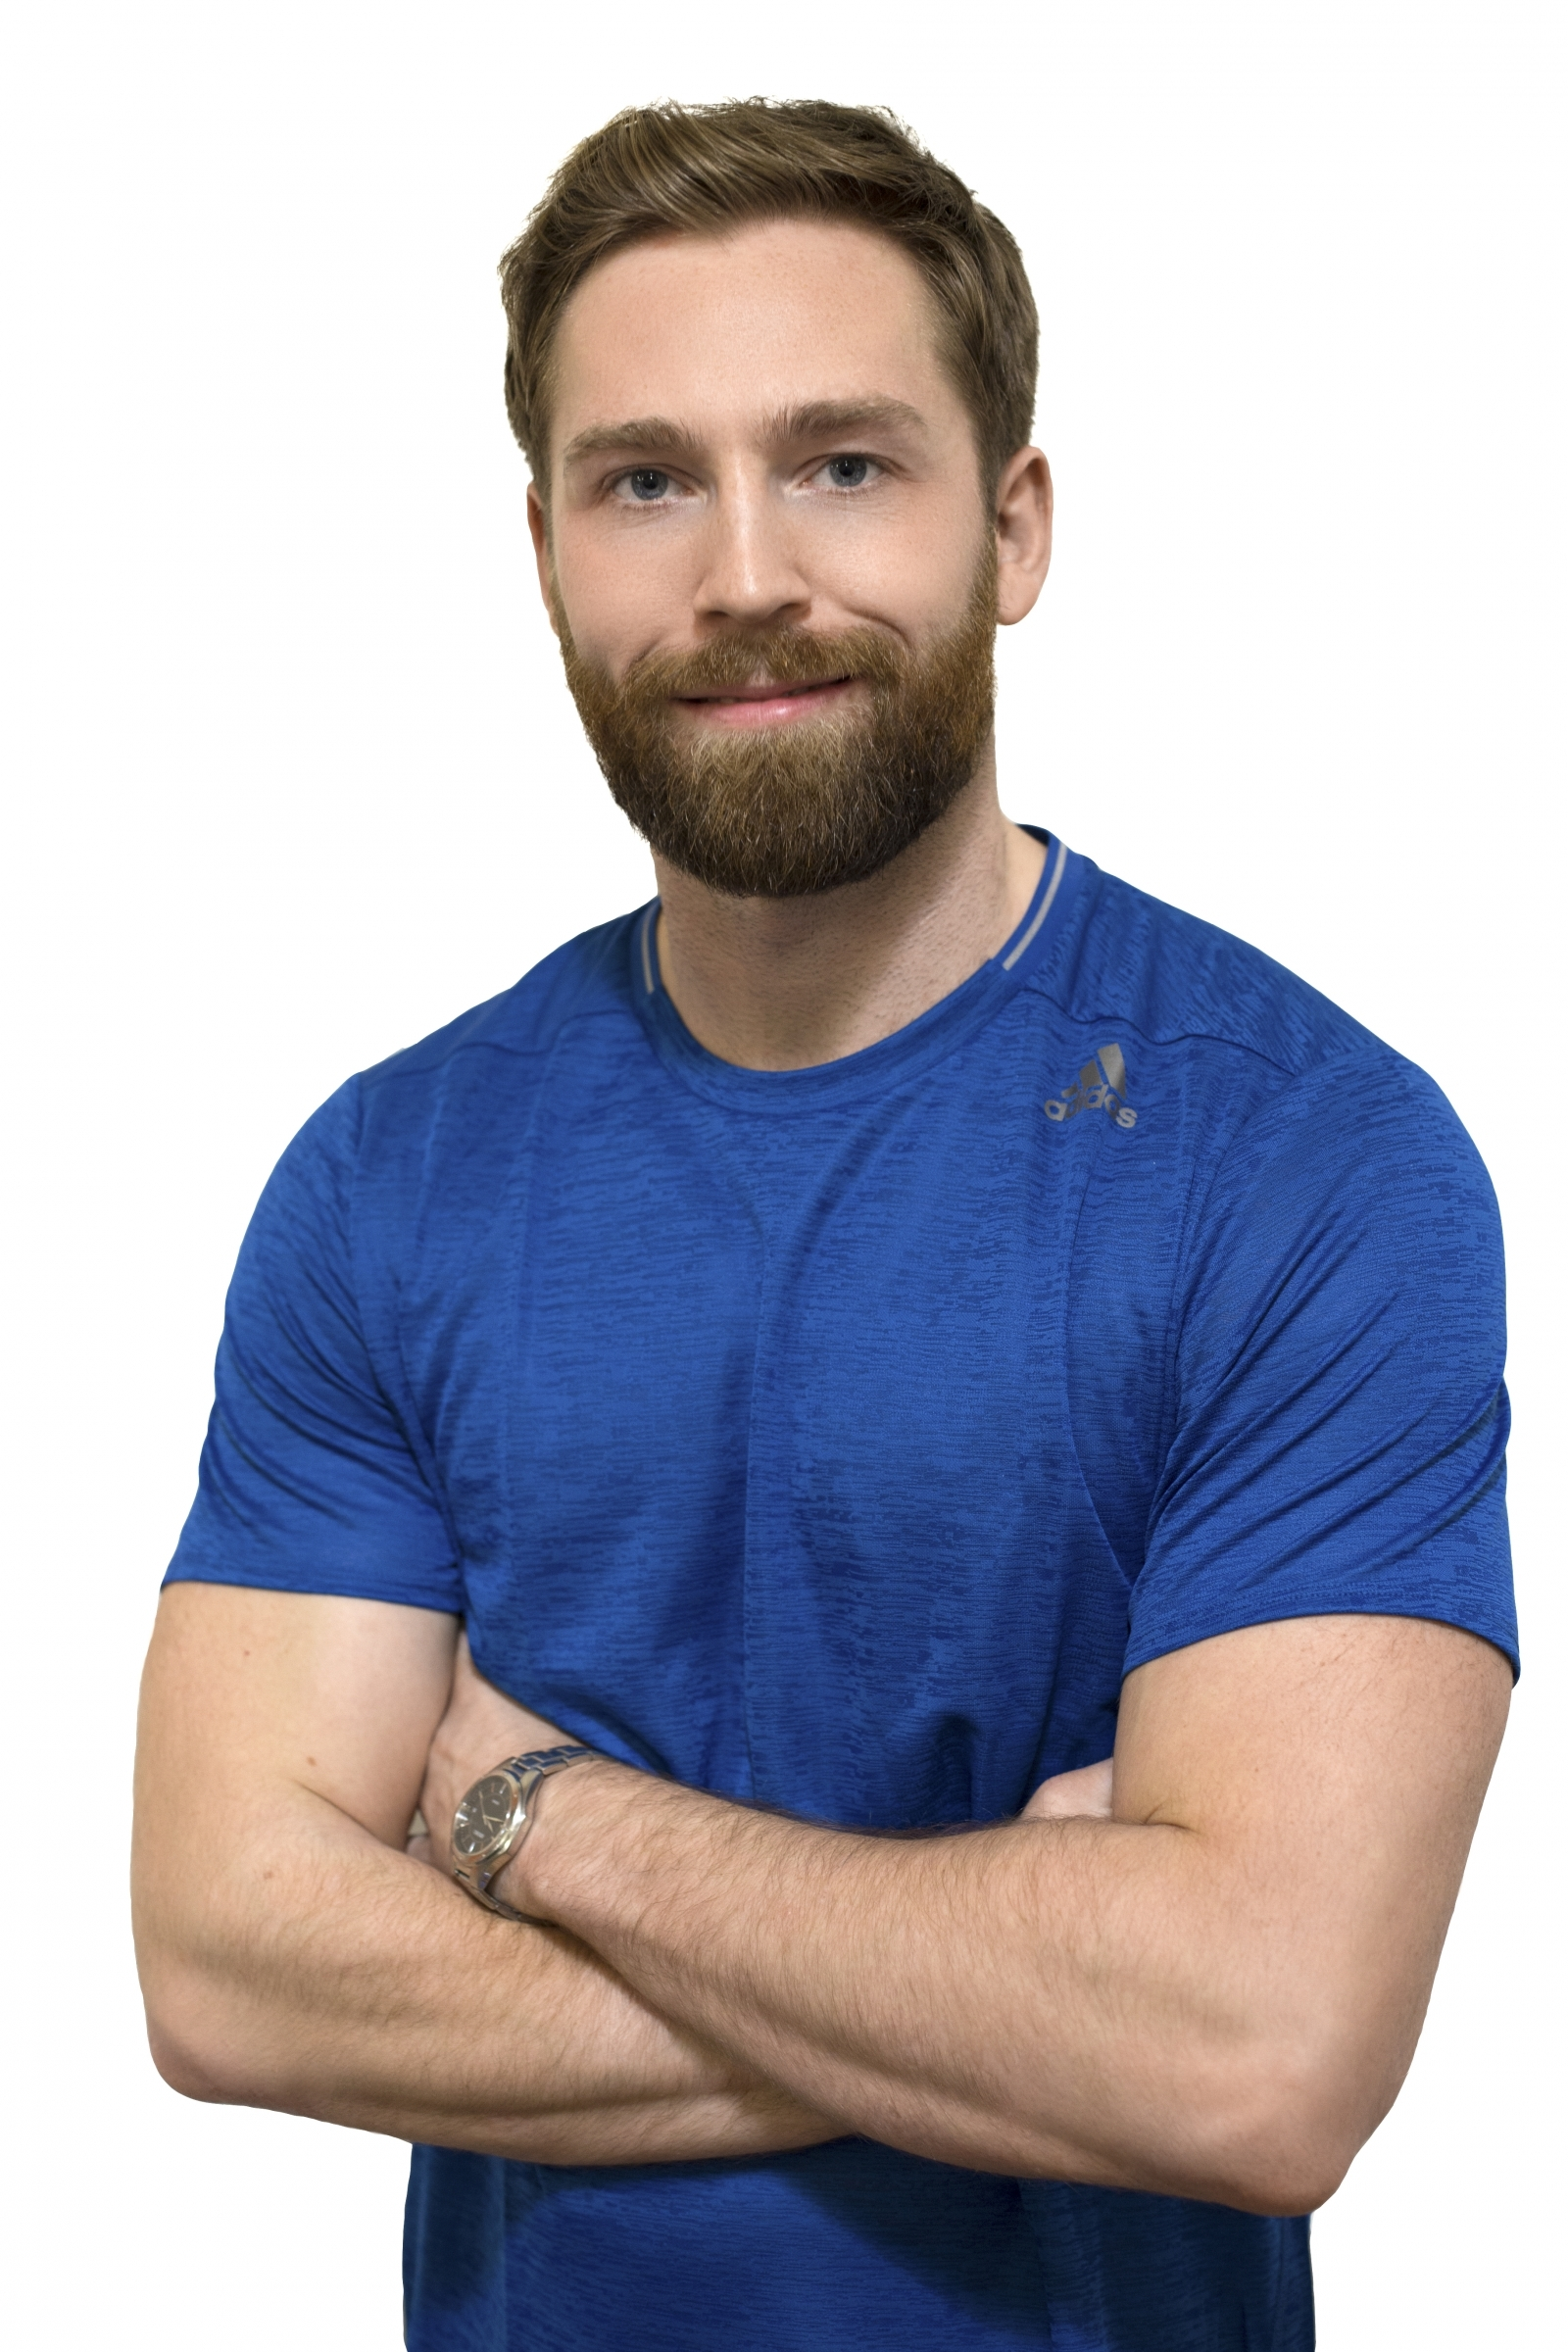 Personal trainer Keith McNiven